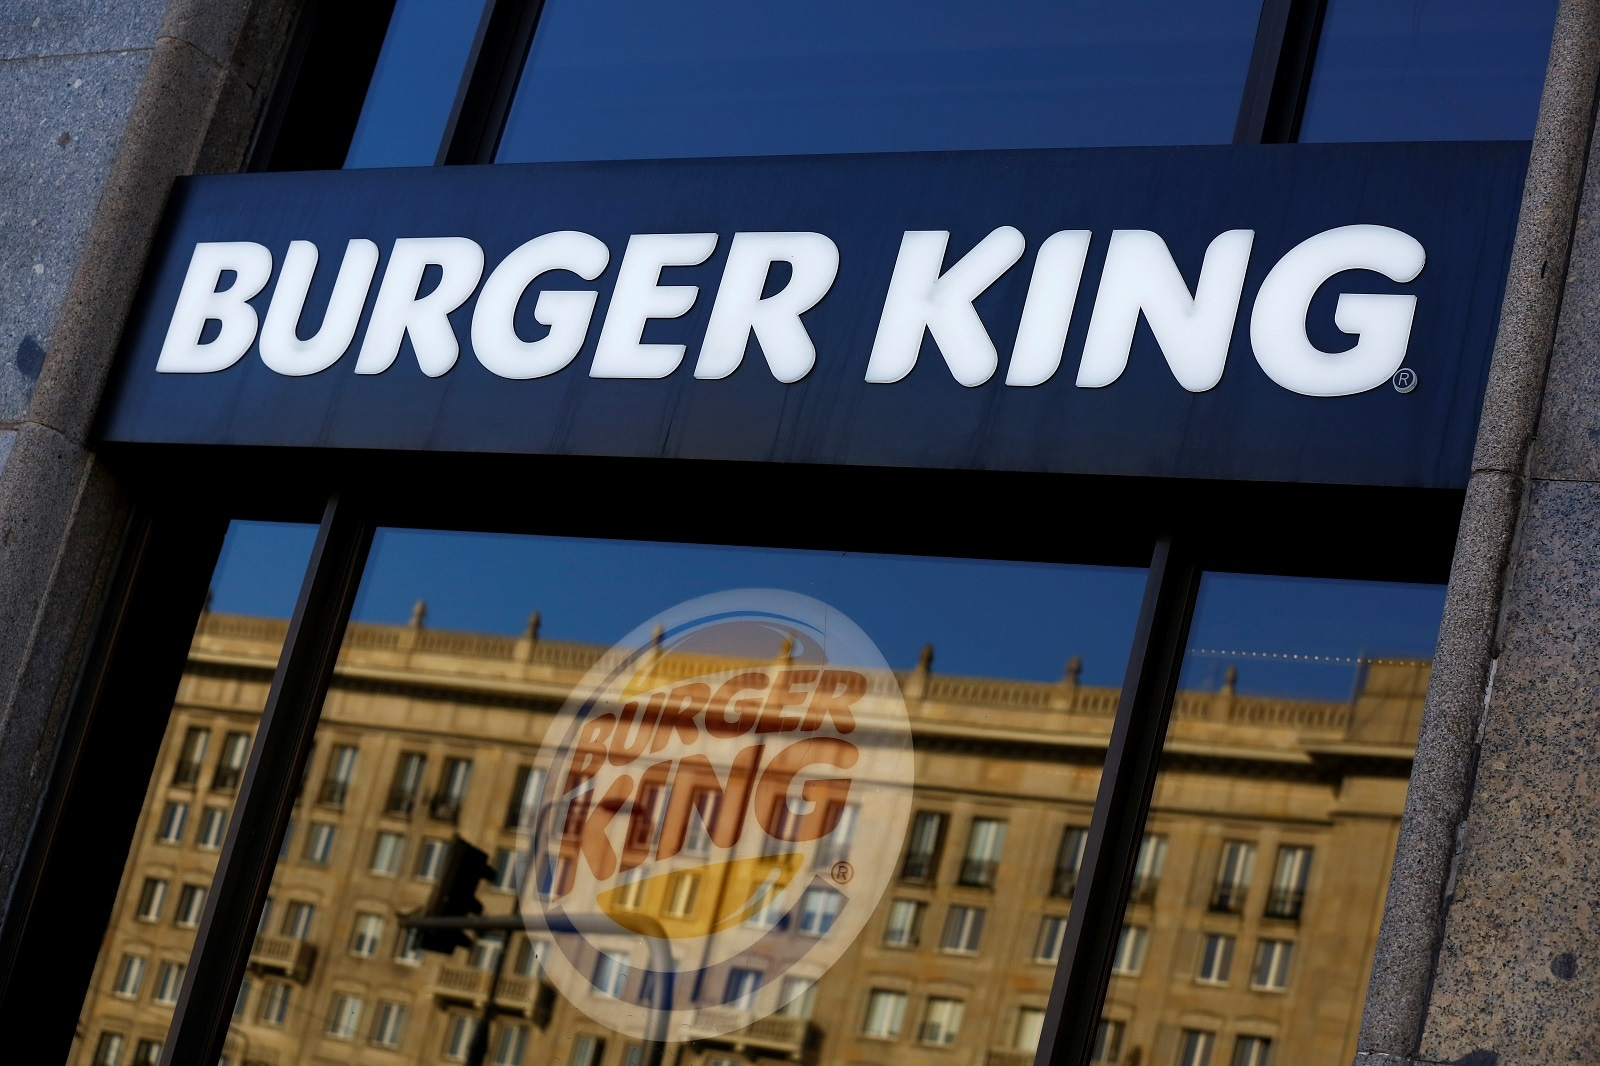 Burger King    The company's shares will be listed today on exchanges after its Rs 810-crore public issue was subscribed 156.65 times, the second-highest in 2020. (Image: Reuters)